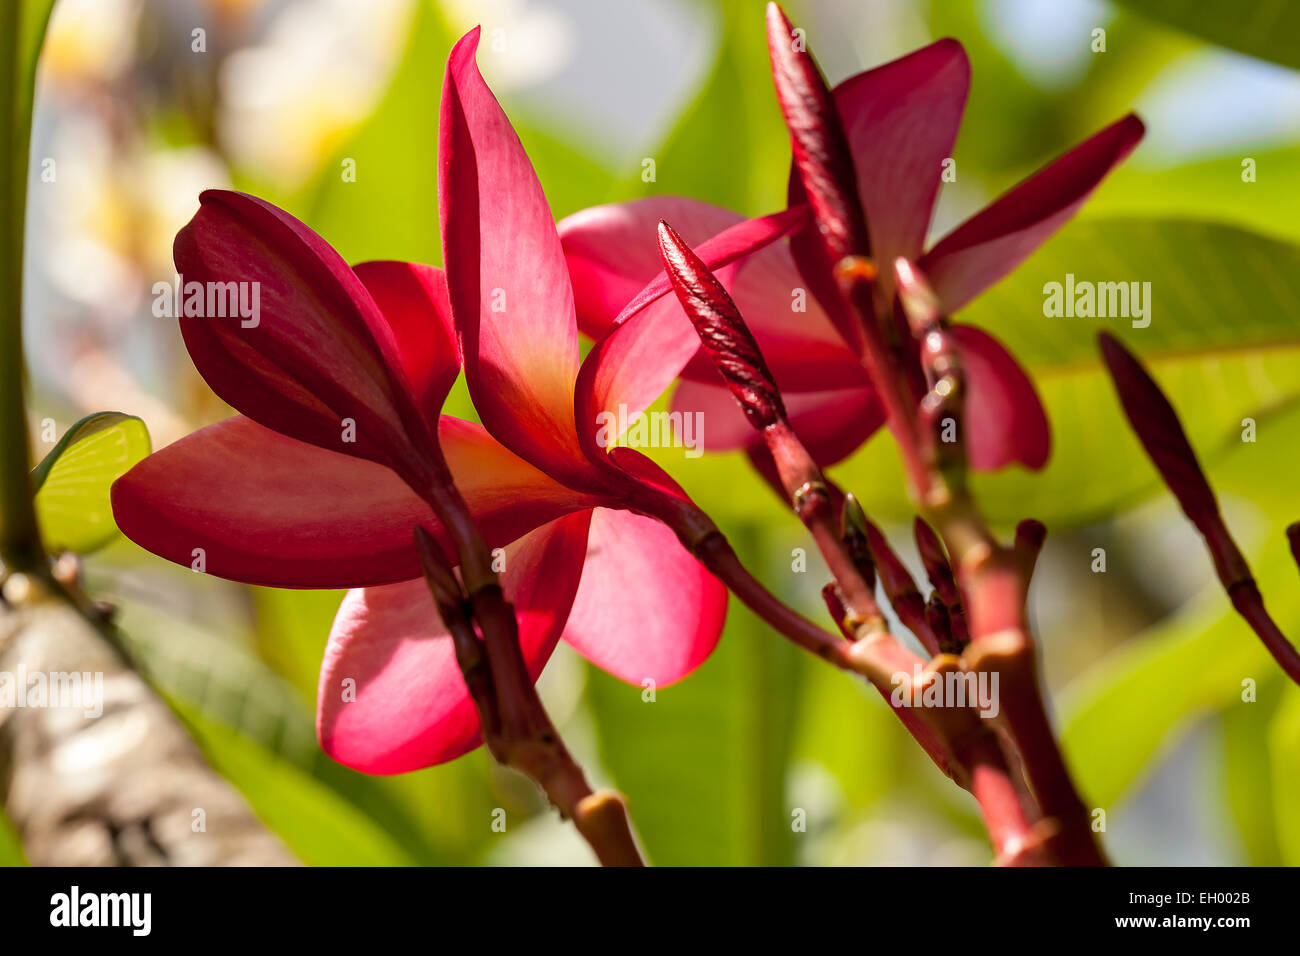 Tropical Pink Flowers Stock Photos Tropical Pink Flowers Stock